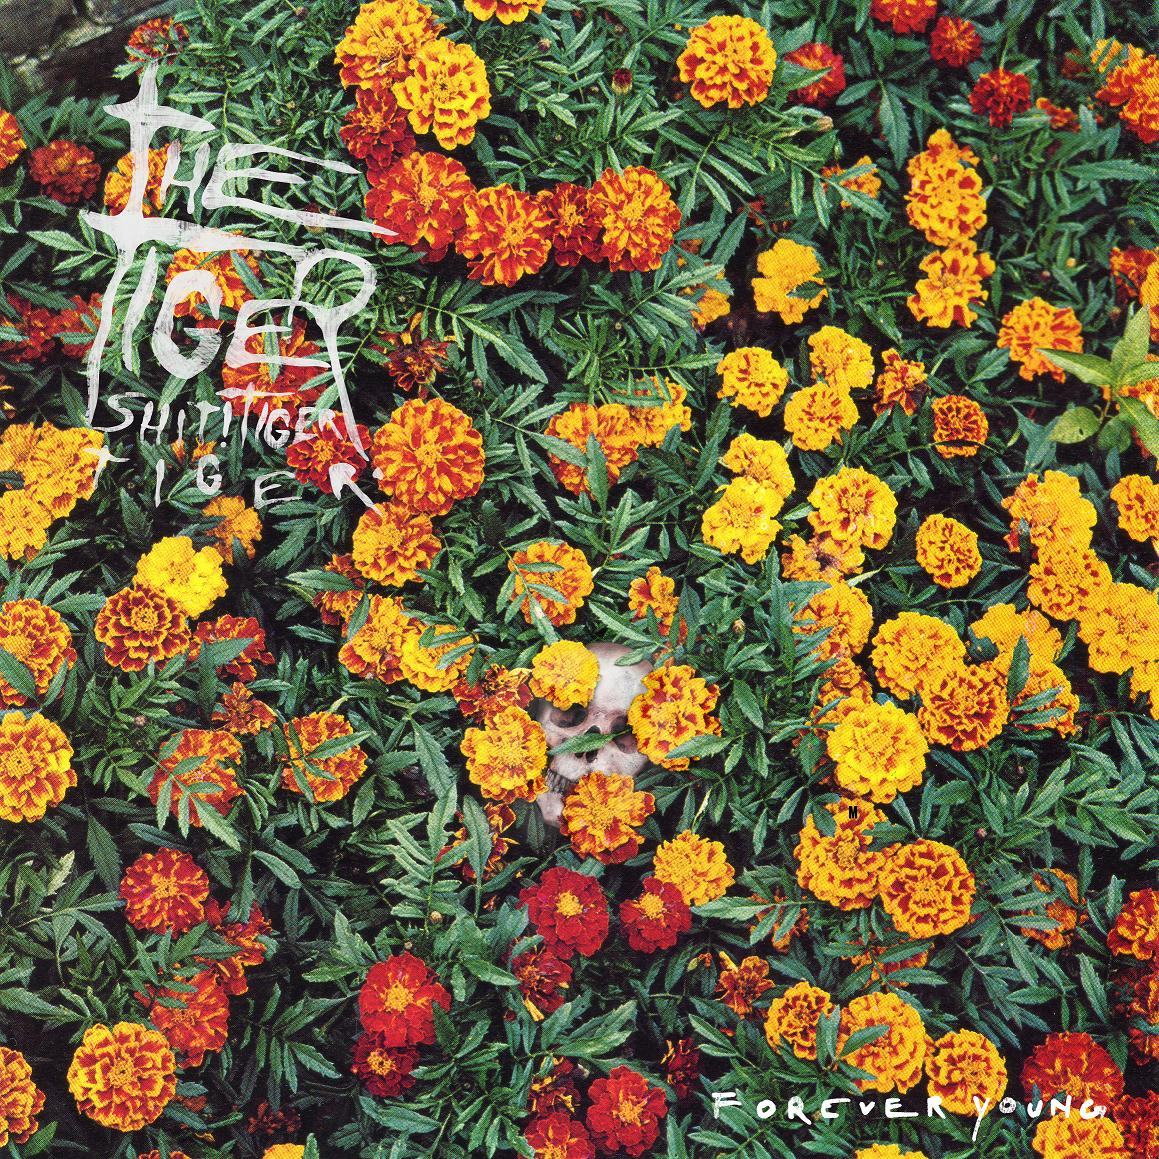 Tiger! Shit! Tiger! Tiger! - Forever Young CD/LP